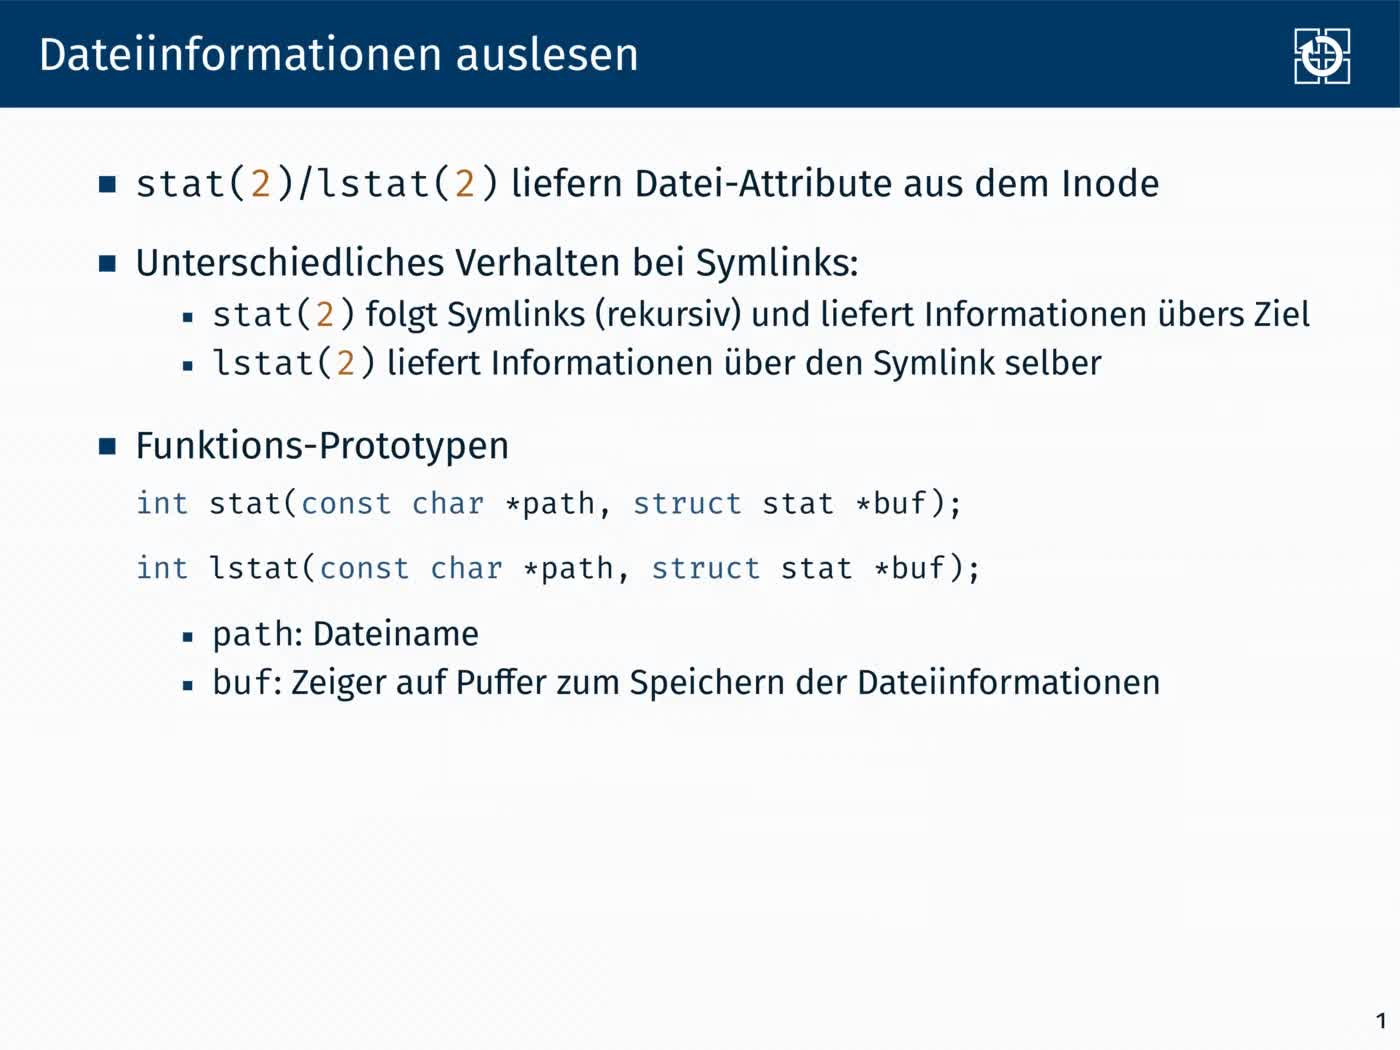 6.2 Dateisysteme: Schnittstelle preview image